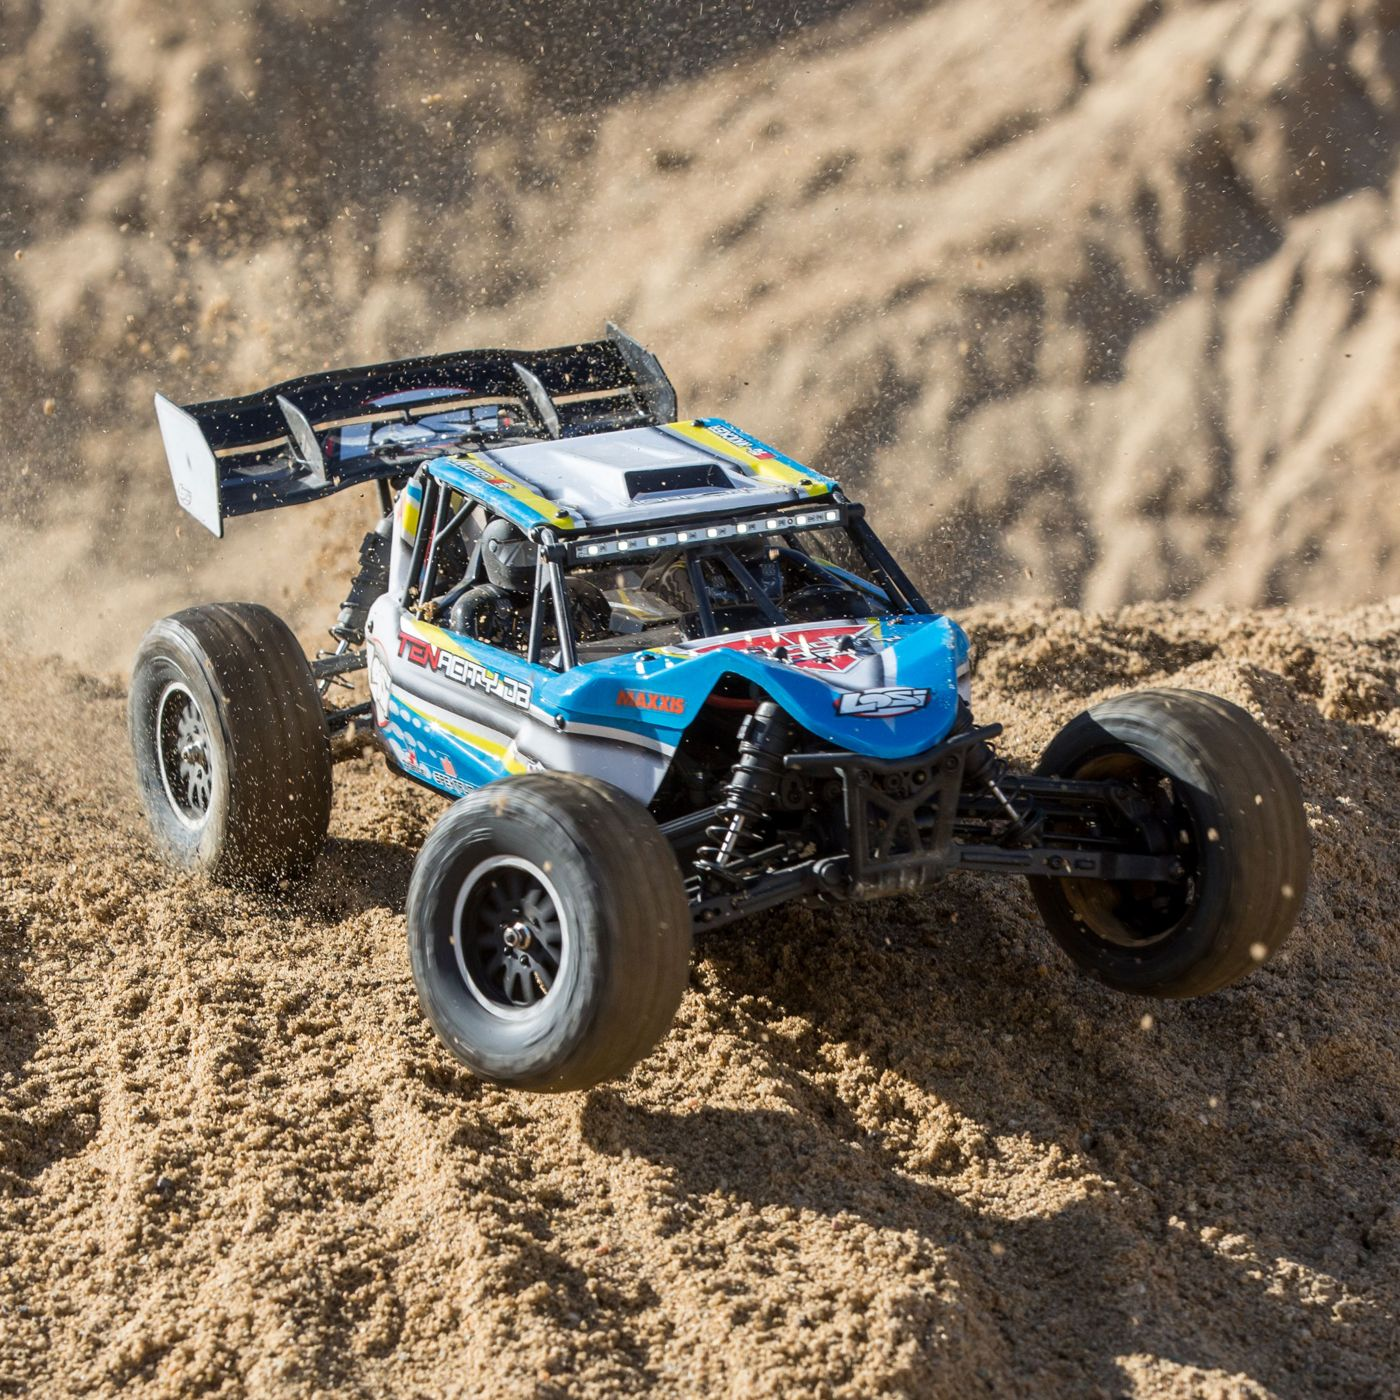 Losi Tenacity 4wd buggy rtr brushless rtr blue 12